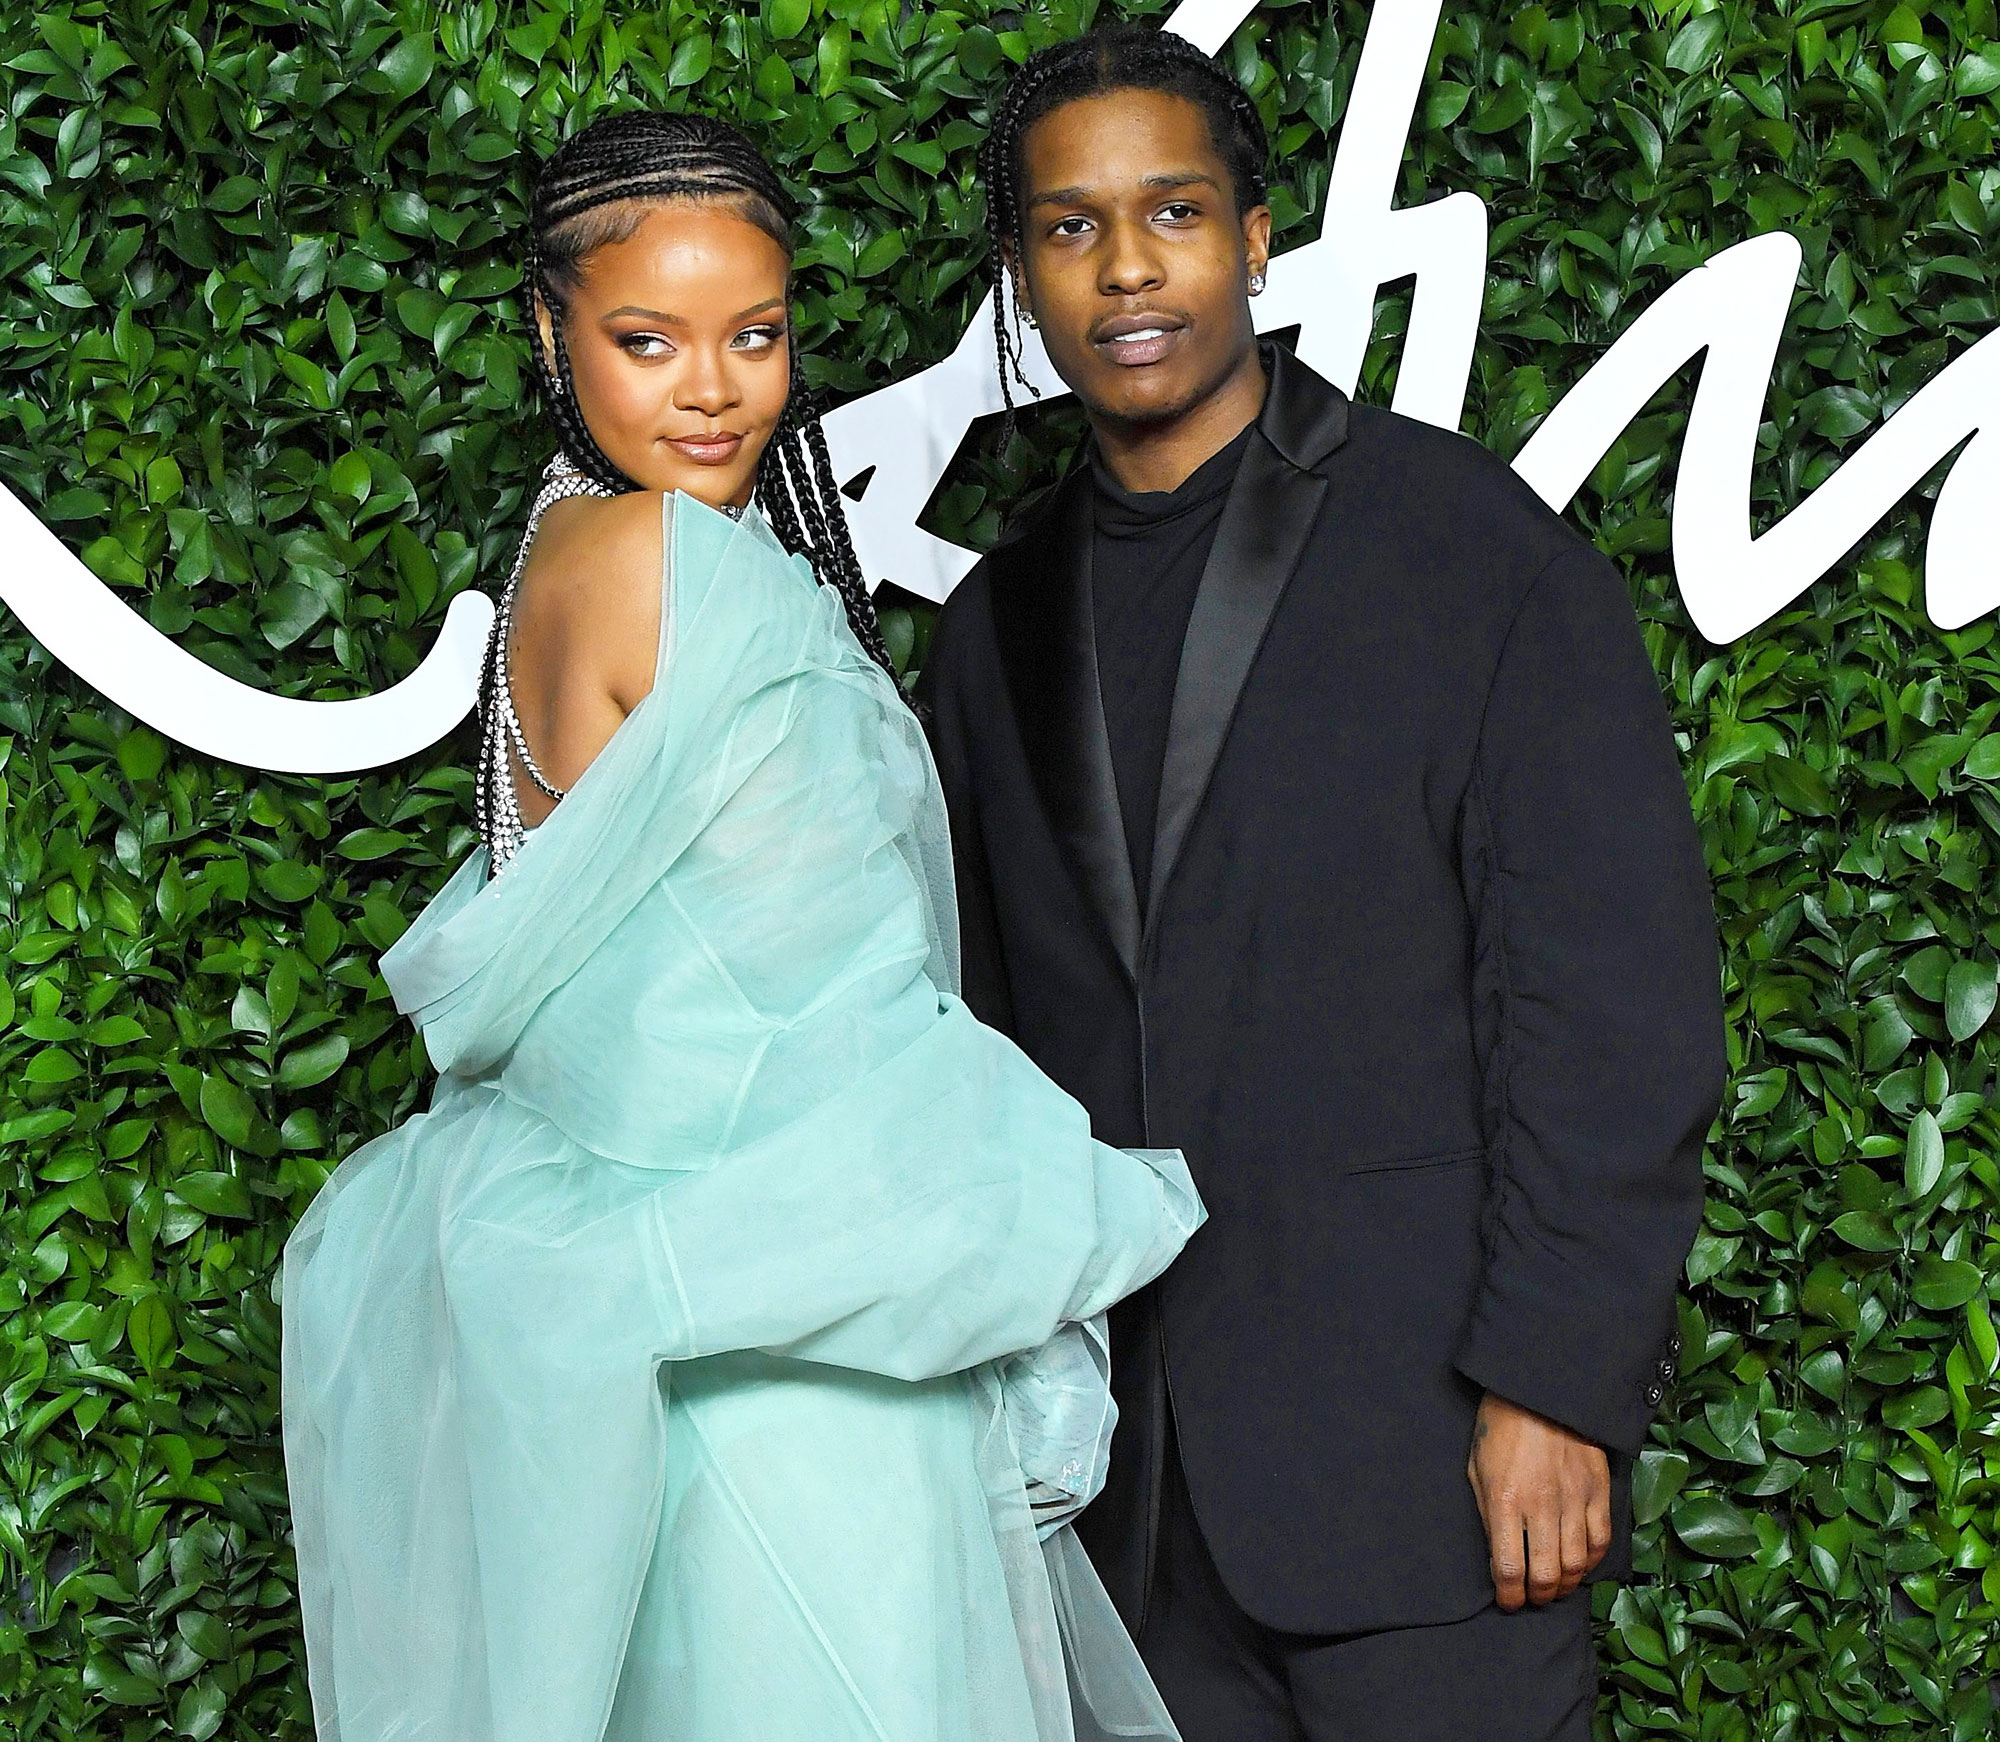 Rihanna and ASAP Rocky at The Fashion Awards Rihanna and A$AP Rocky Are Hooking Up After Her Split From Hassan Jameel